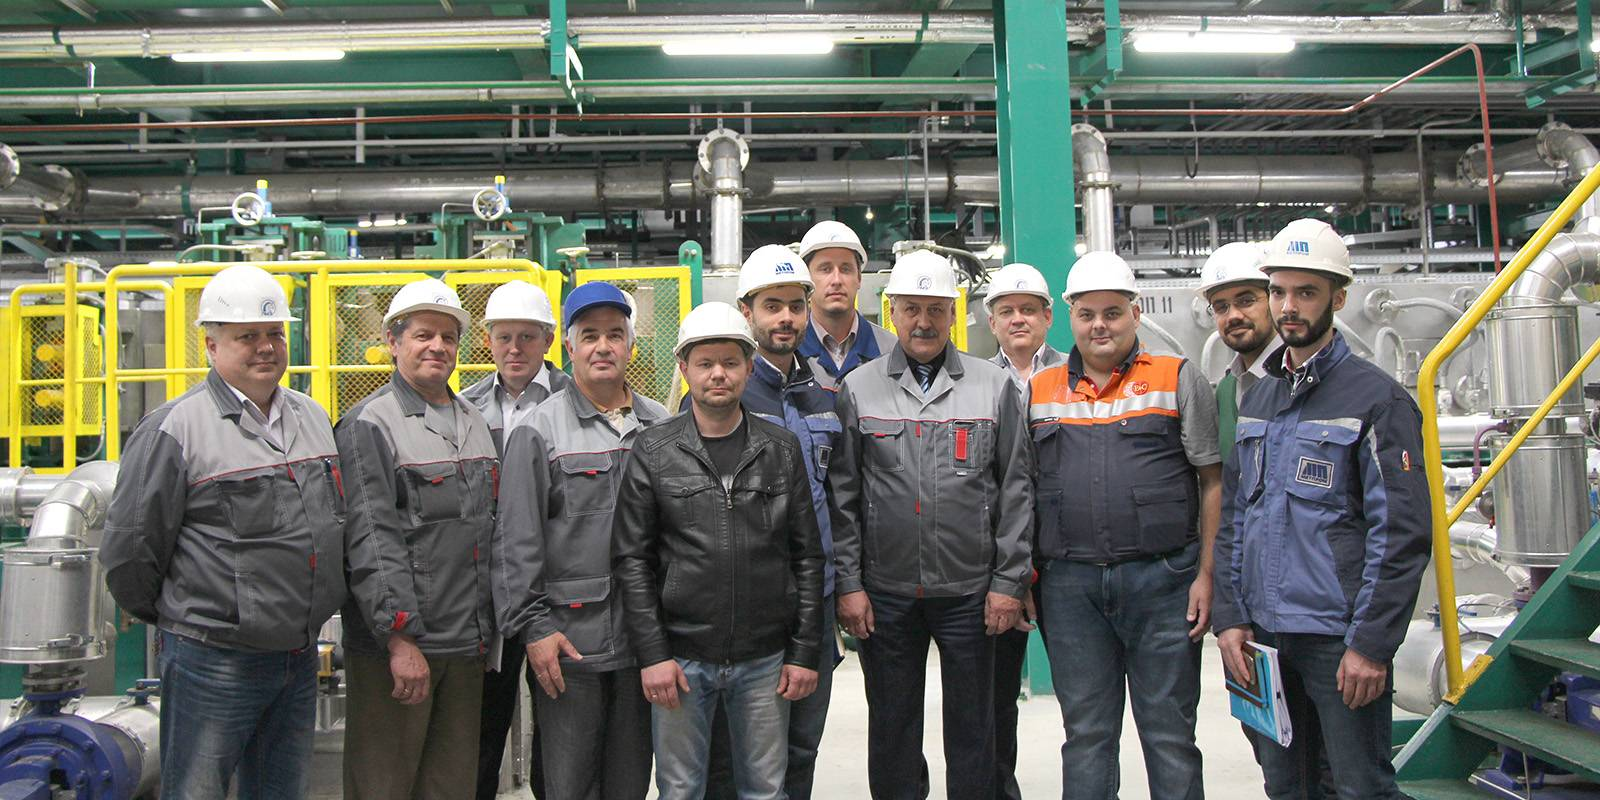 Souvenir picture from LMZ plant. <br> From left to right:  Terentyev S.N. (Lead Power Engineer), Solomin A.V. (Head of Capital Construction), Kolyvanov I.V. (Deputy Chief Engineer), Filippov S.V. (Deputy Chief Engineer on New Tech), Peretyagin O.V. (Power Engineer), Shamrey V.A. (General Director MetPromStroy), Ogorodov I.A. (Project Manager for LMZ), Deineko A.D. (General Director), Chistyakov I.P. (Technical Director MC LMC), Sabbadini M. (Site & Commissioning Manager), Pankin I.P. (Director of Legal Affairs), Shamrey I.A. (Project Manager for MetPromStroy).